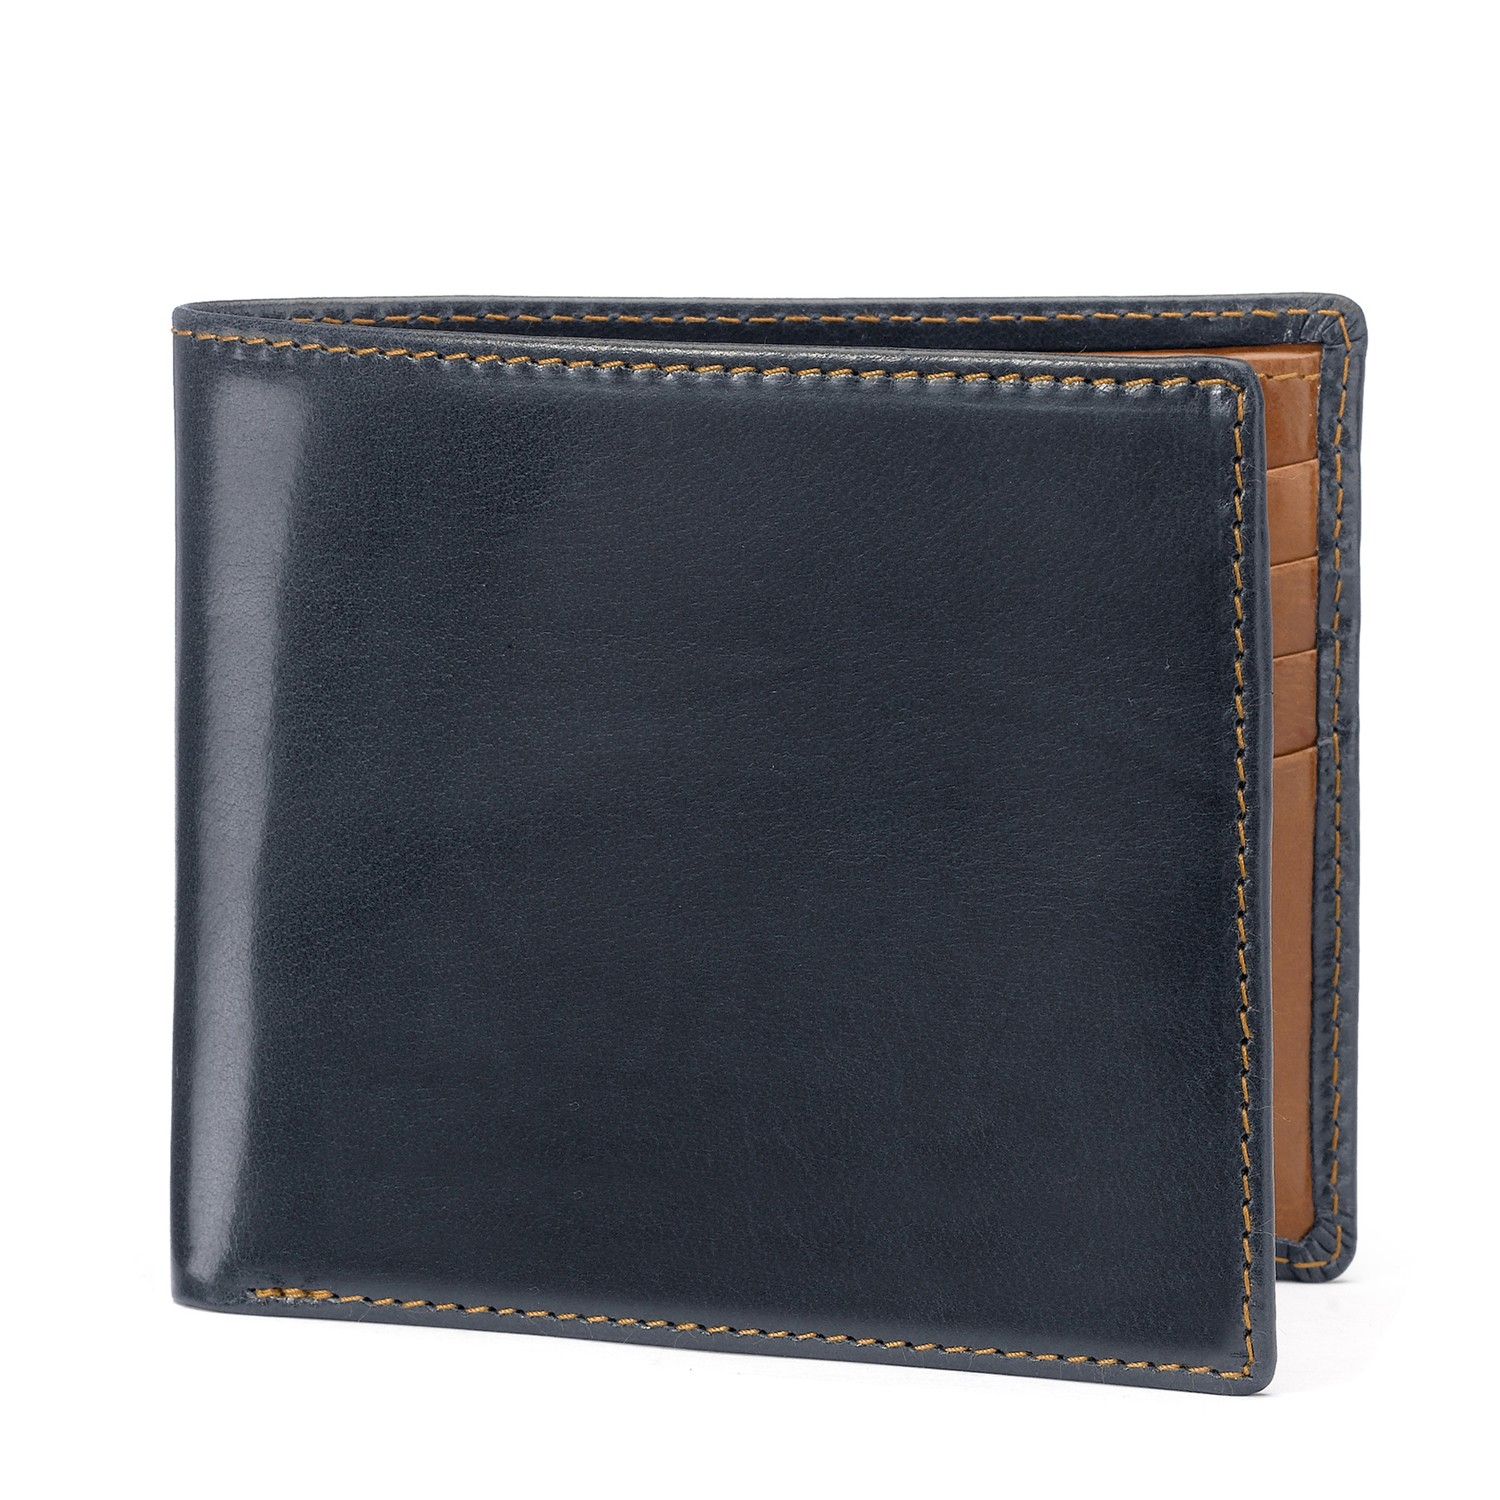 Tusting Navy and Tan Leather Wallet